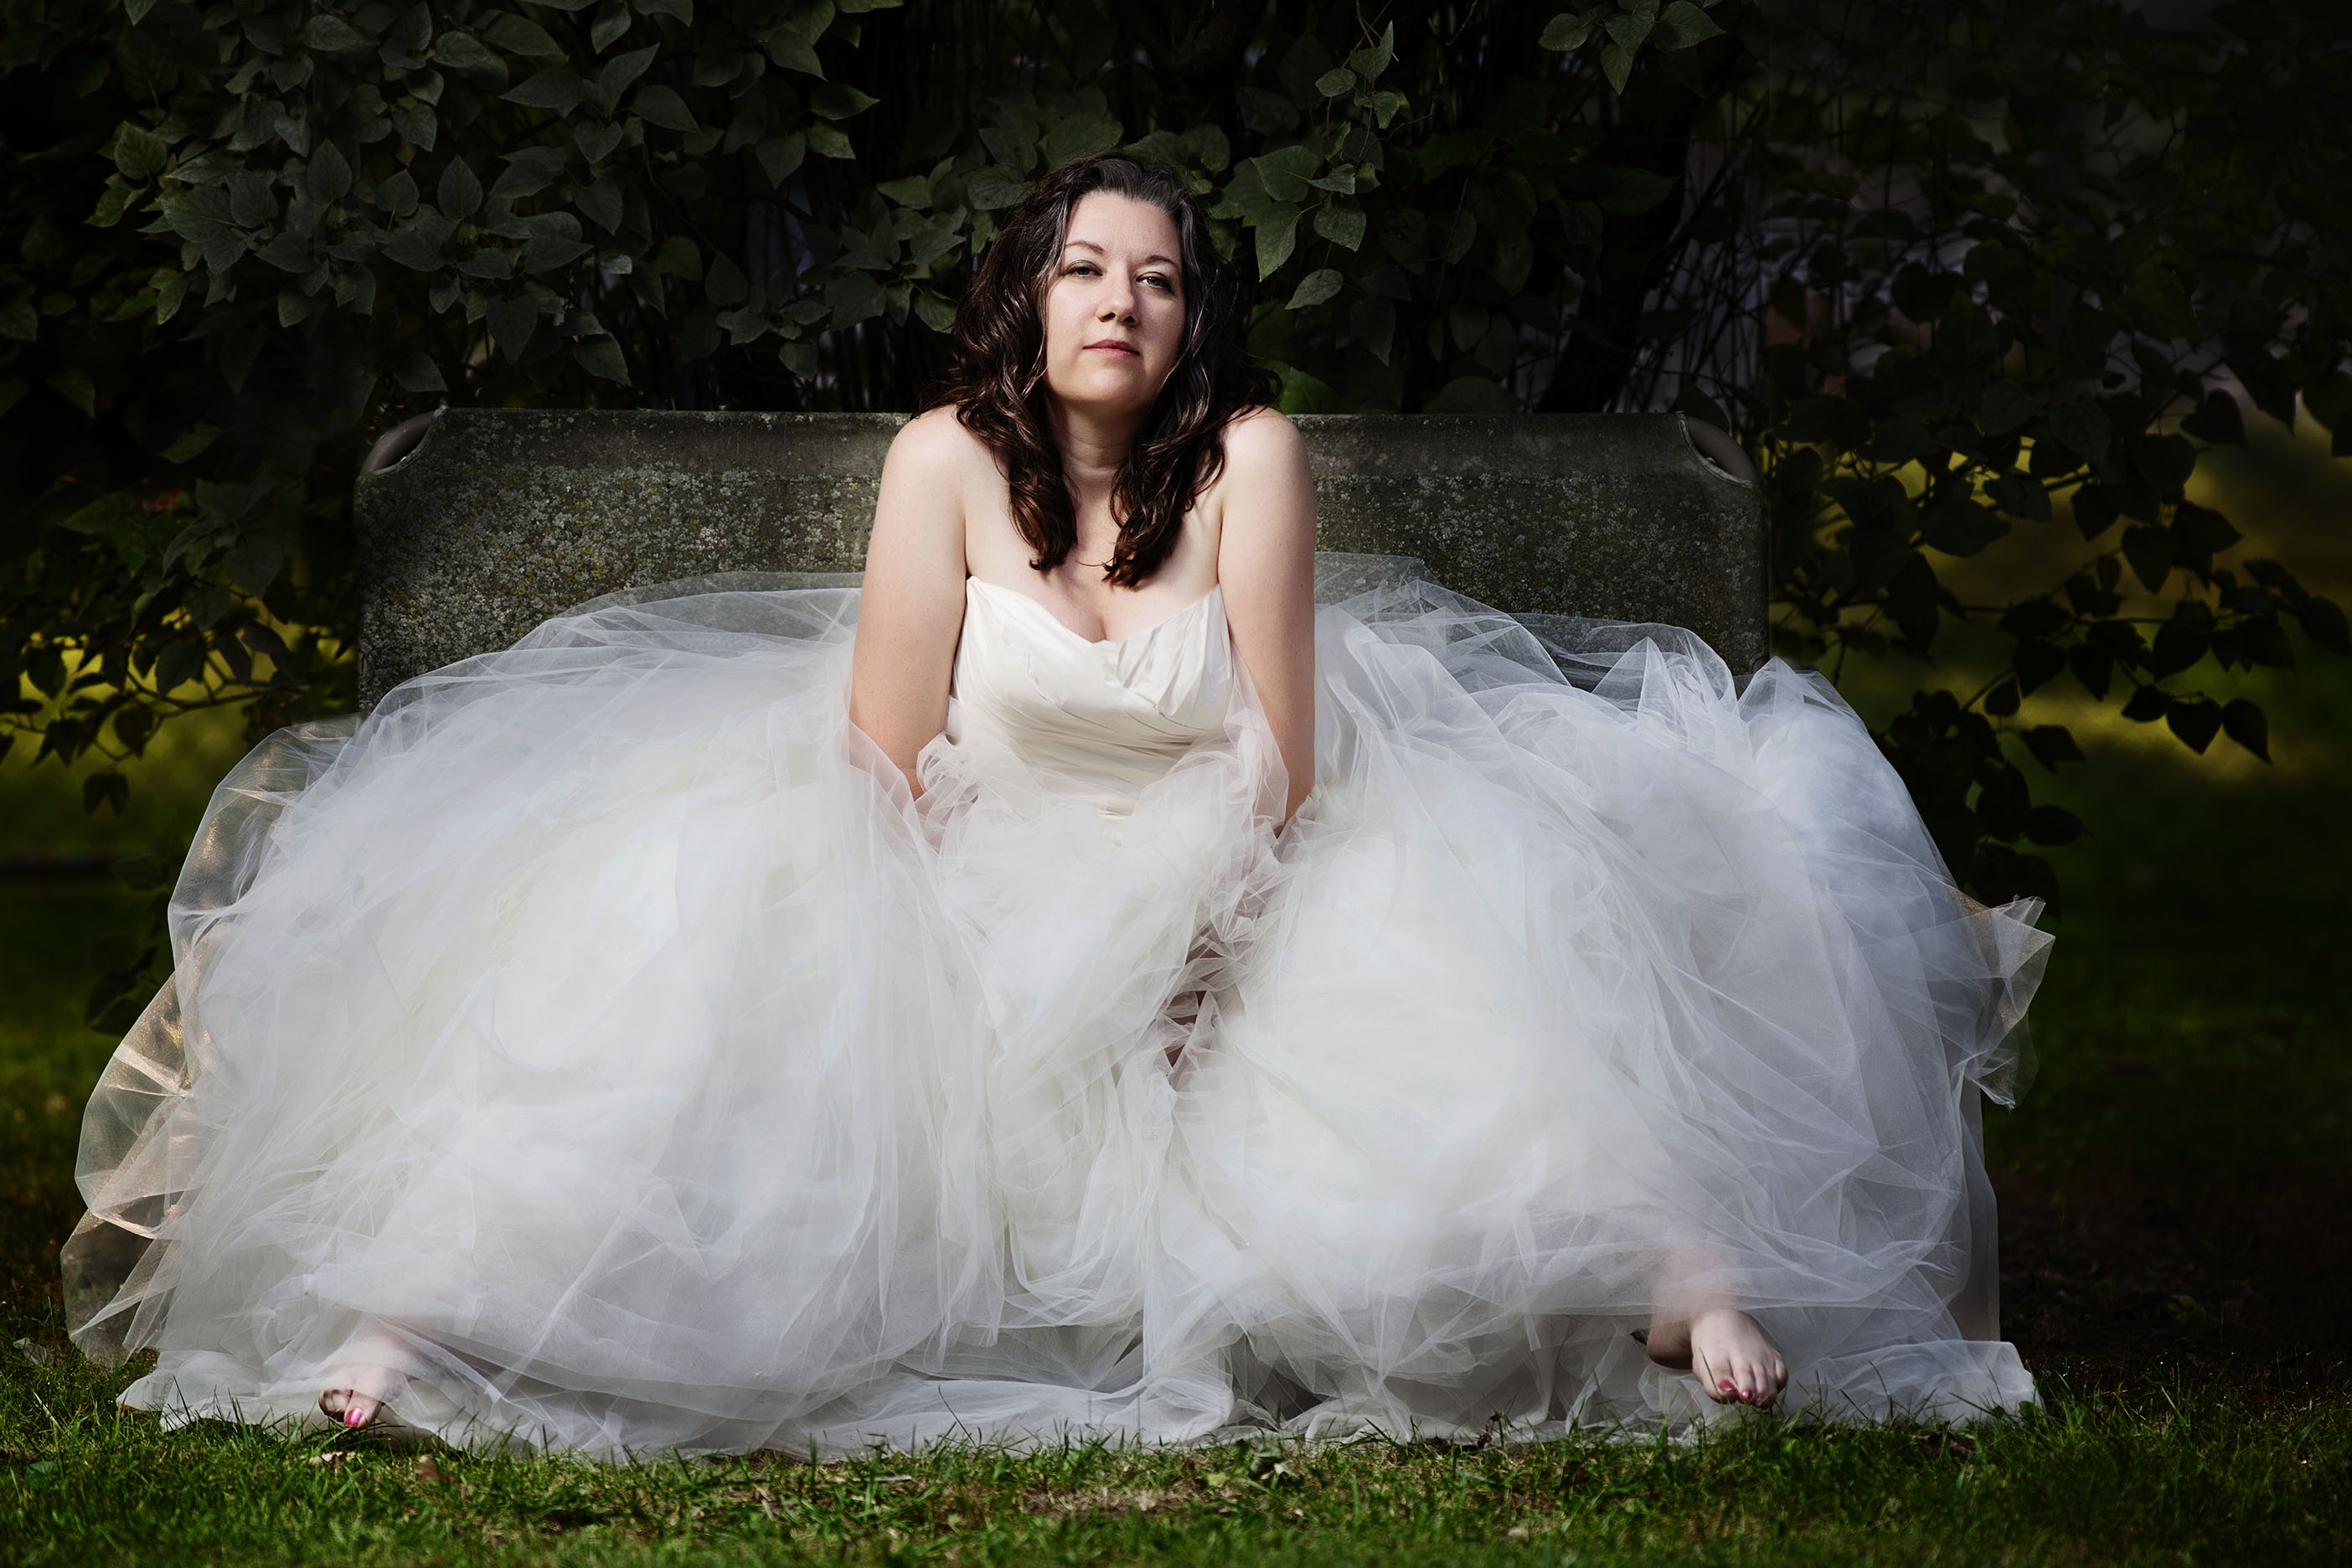 In your Vera Wang... or ours.No need to follow in the  antiquated footsteps of every Jill, Janet and Jane. Friends and family want to see your bridal photographs at the wedding, not months afterwards. Have a wonderful time in front of our cameras with unfettered imagination, and relax knowing that if you want to ride a 1,000lb prized pig with your favorite cowgirl boots on, across the familly farm...  you might want to use our Vera Wang; not yours ;)